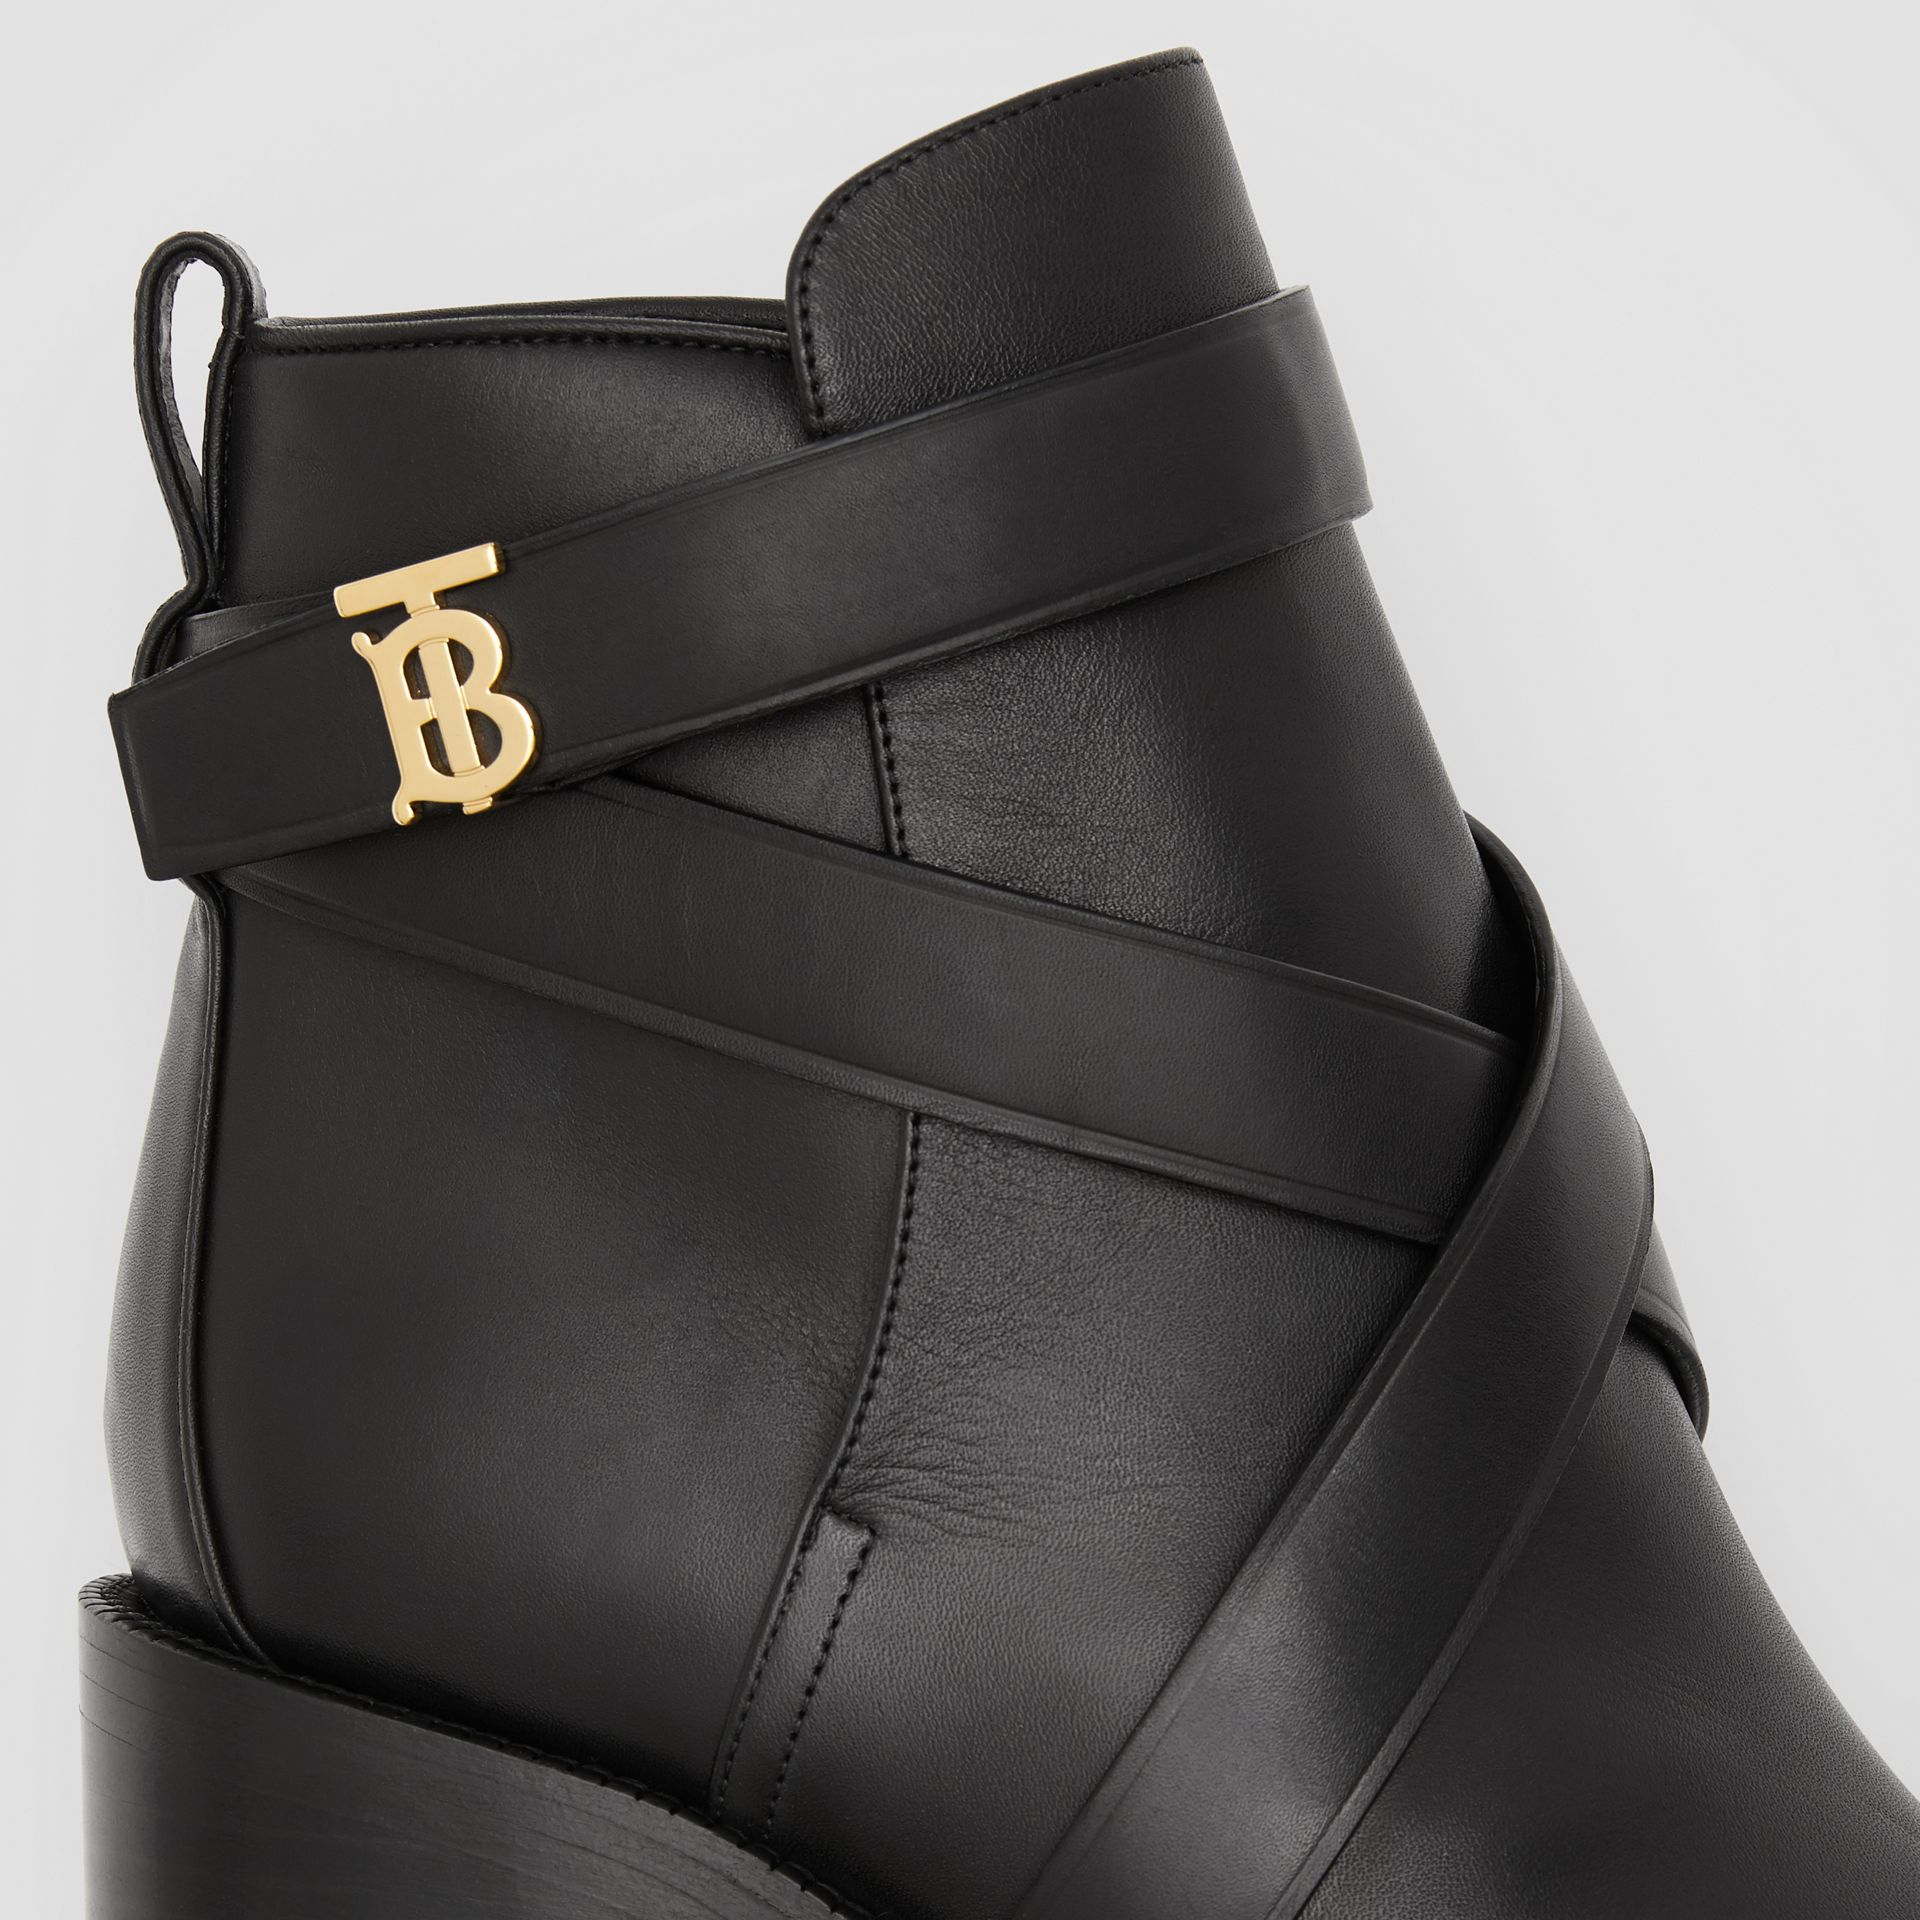 Monogram Motif Leather Ankle Boots in Black - Women | Burberry United Kingdom - gallery image 1